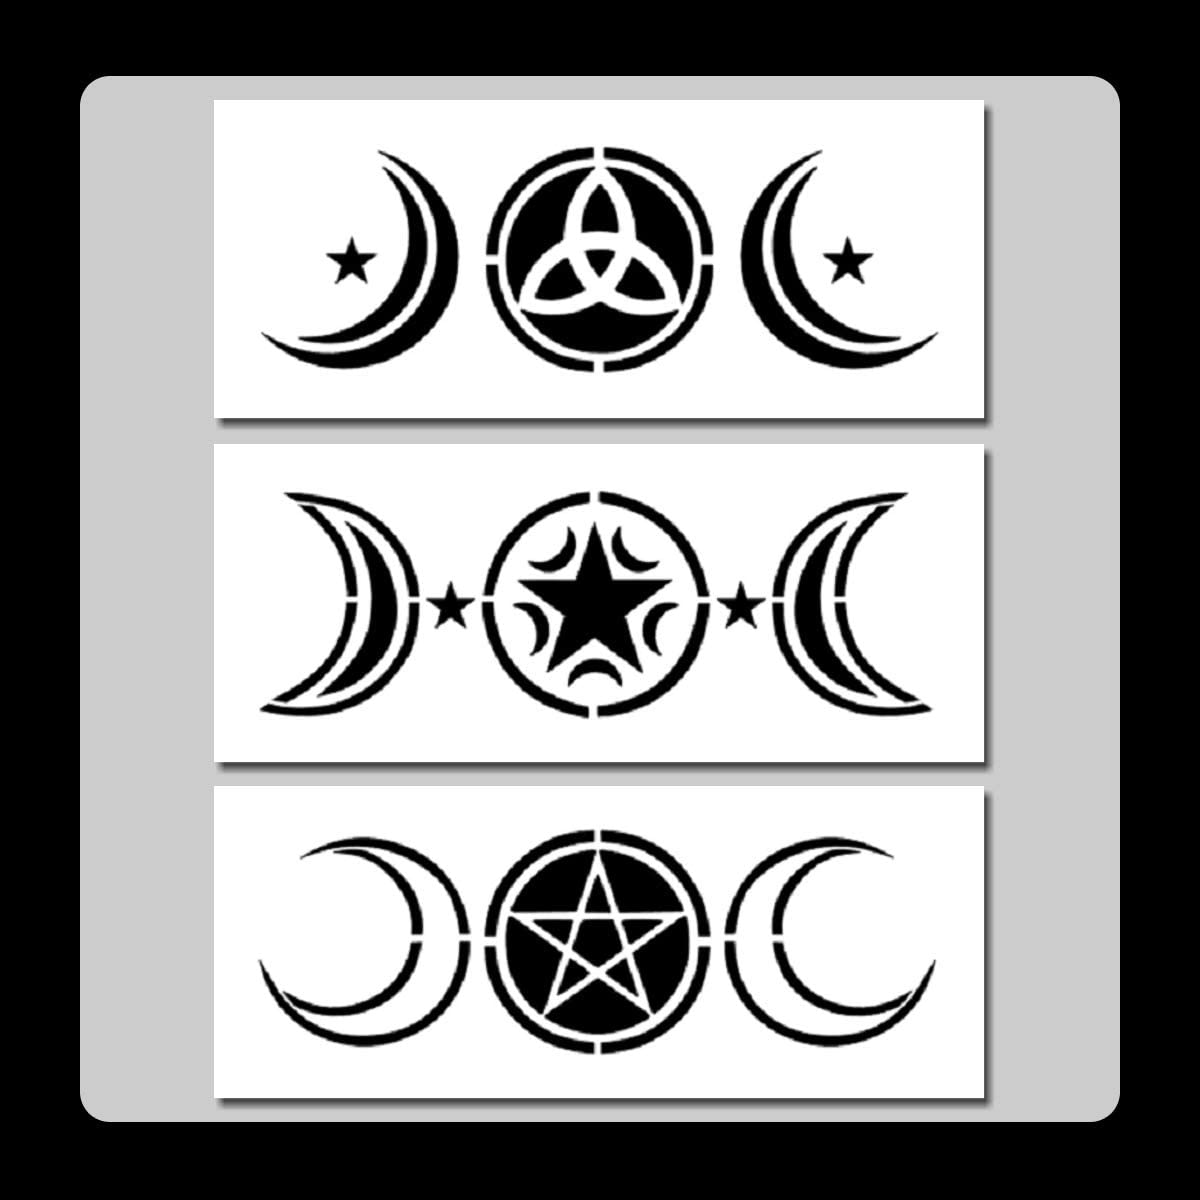 9 X 9 Wiccan Goddess STENCIL with Moon Phases and Stars Wicca//Pagan//Nature